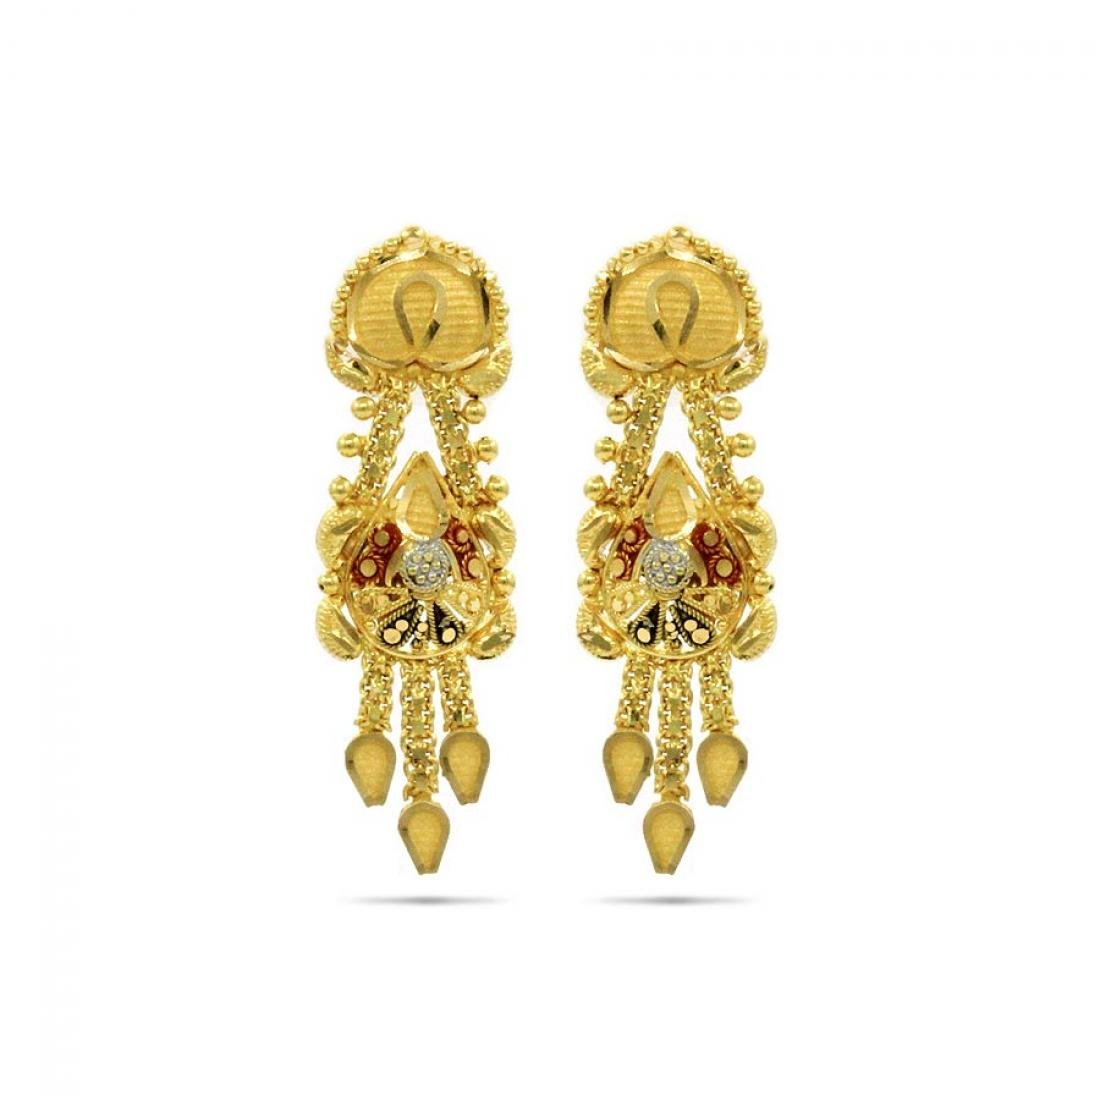 6a5ce7be4 Candere By Kalyan Jewellers 22k (916) Yellow Gold Jhumki Earrings for Women  - Gia Designer